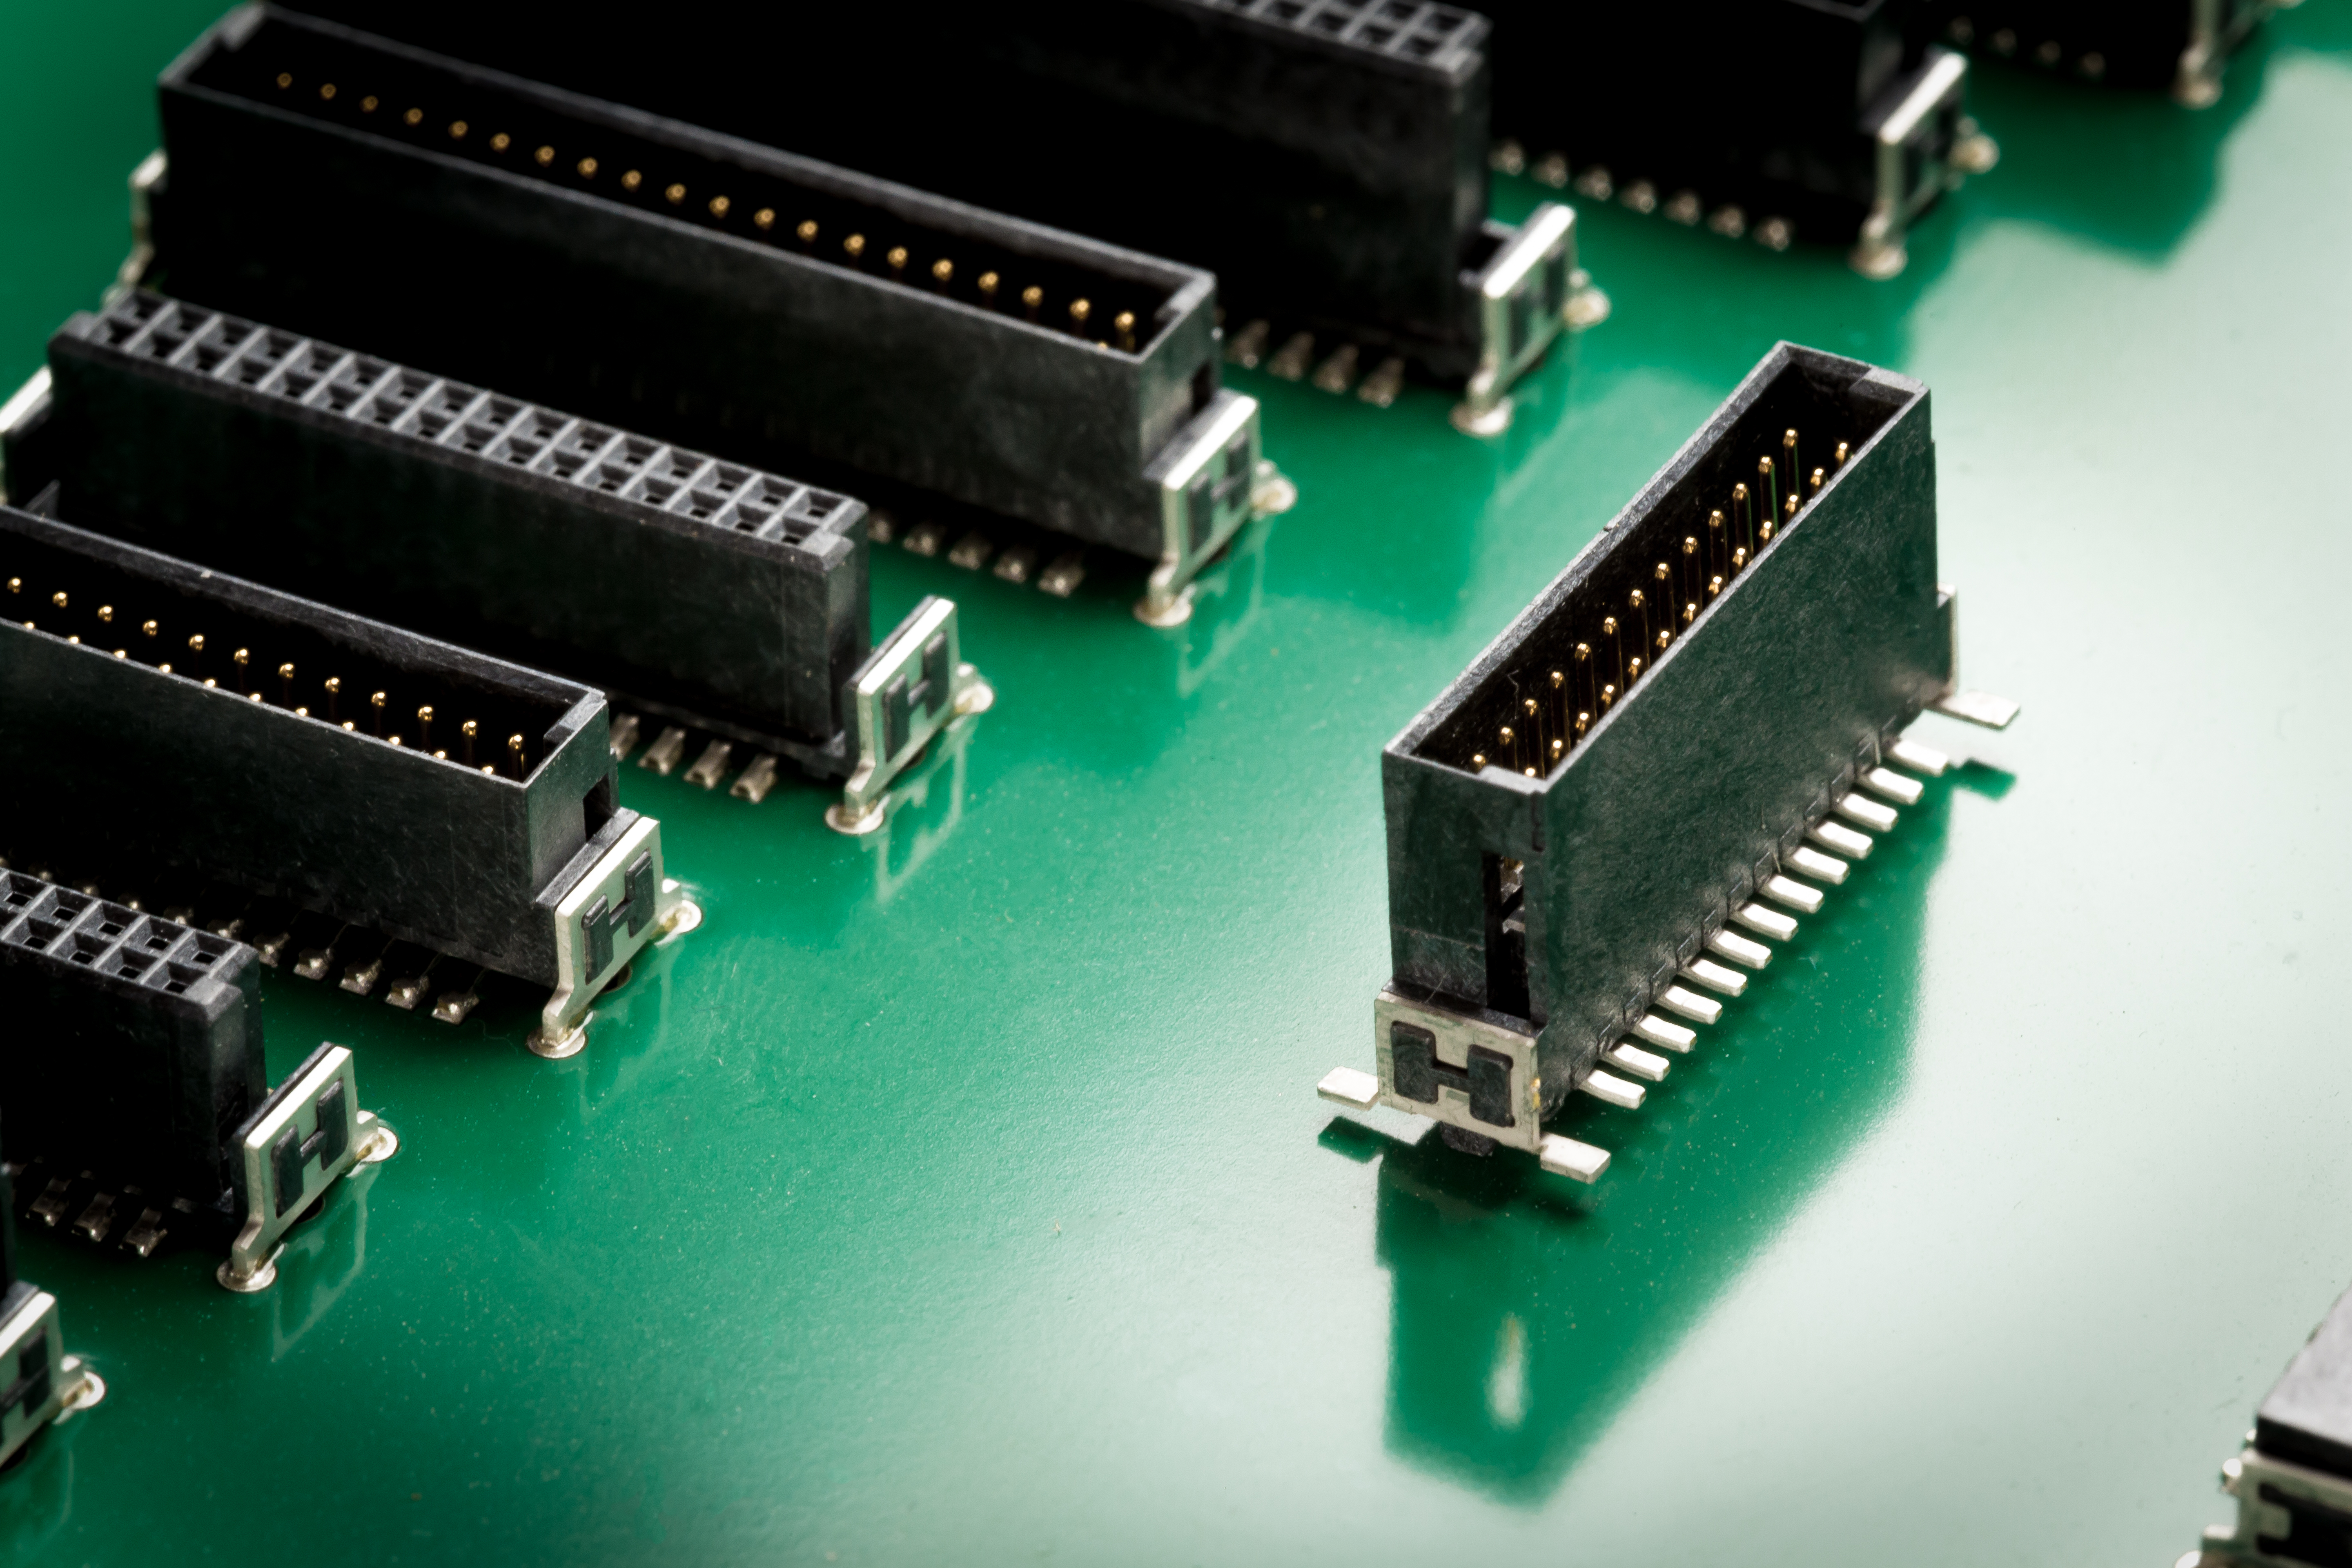 New Stacking Heights For The Miniaturised Har Flex Pcb Connectors Electronic Circuit Board With Processor Repair Boards Stock